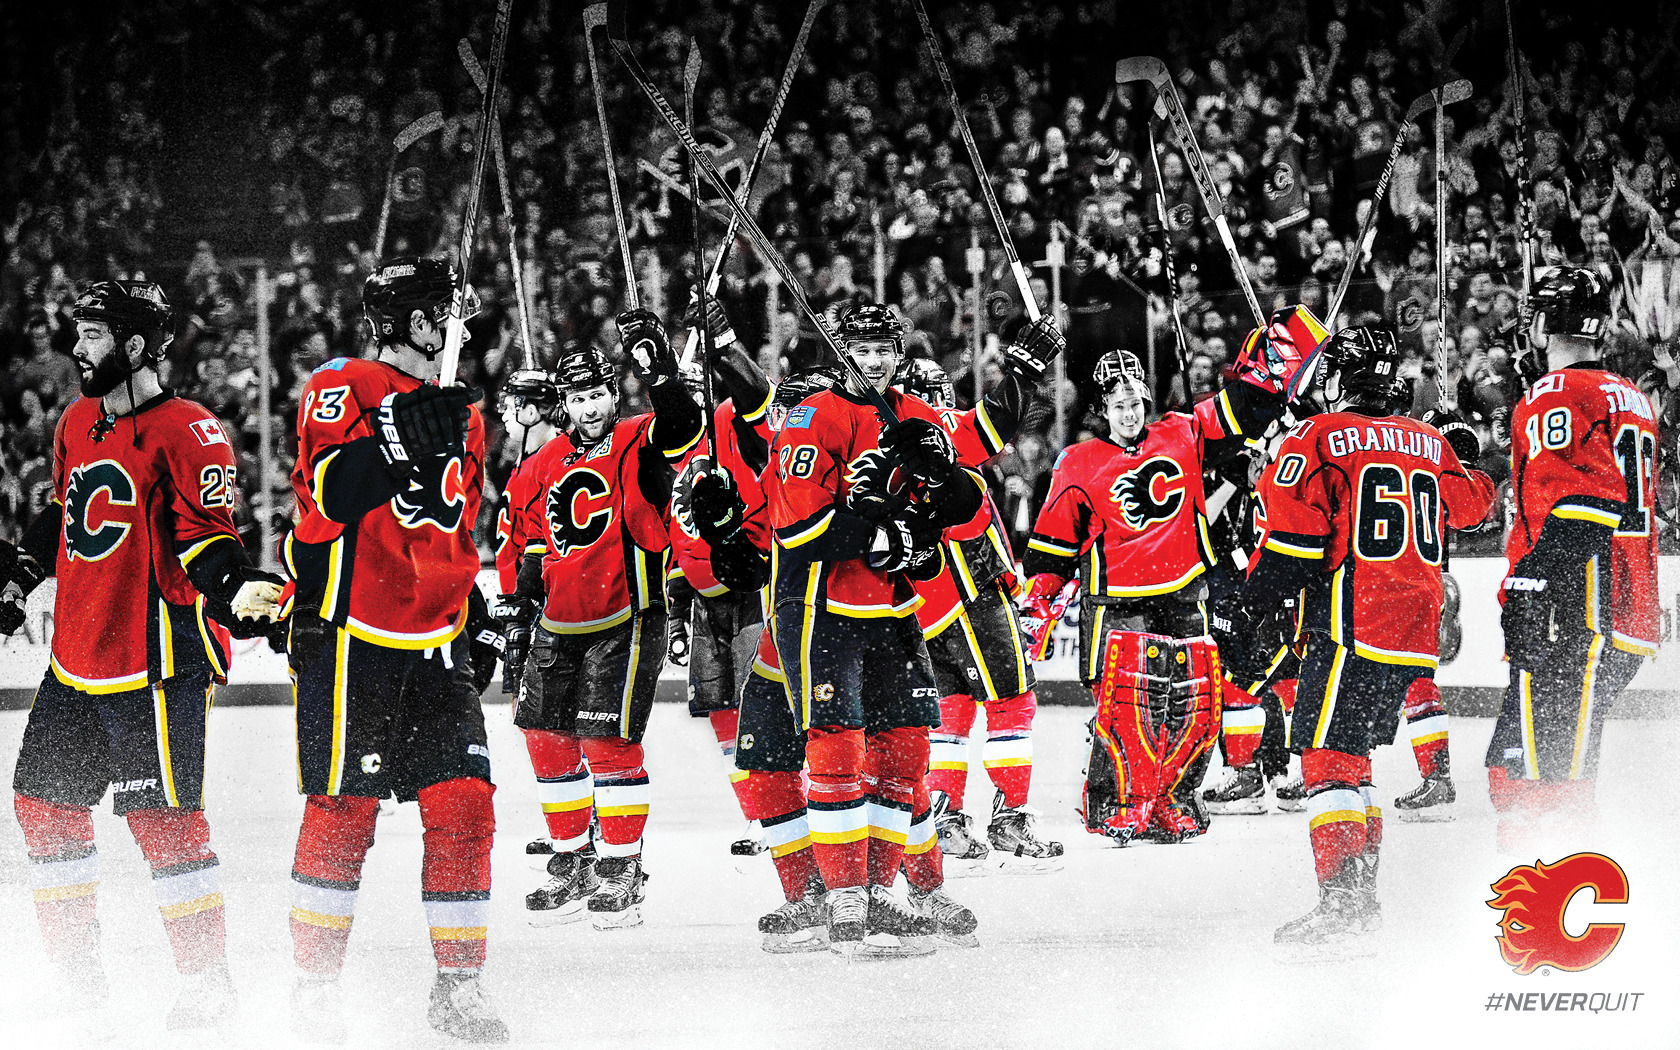 [38+] Calgary Flames Wallpaper Images On WallpaperSafari